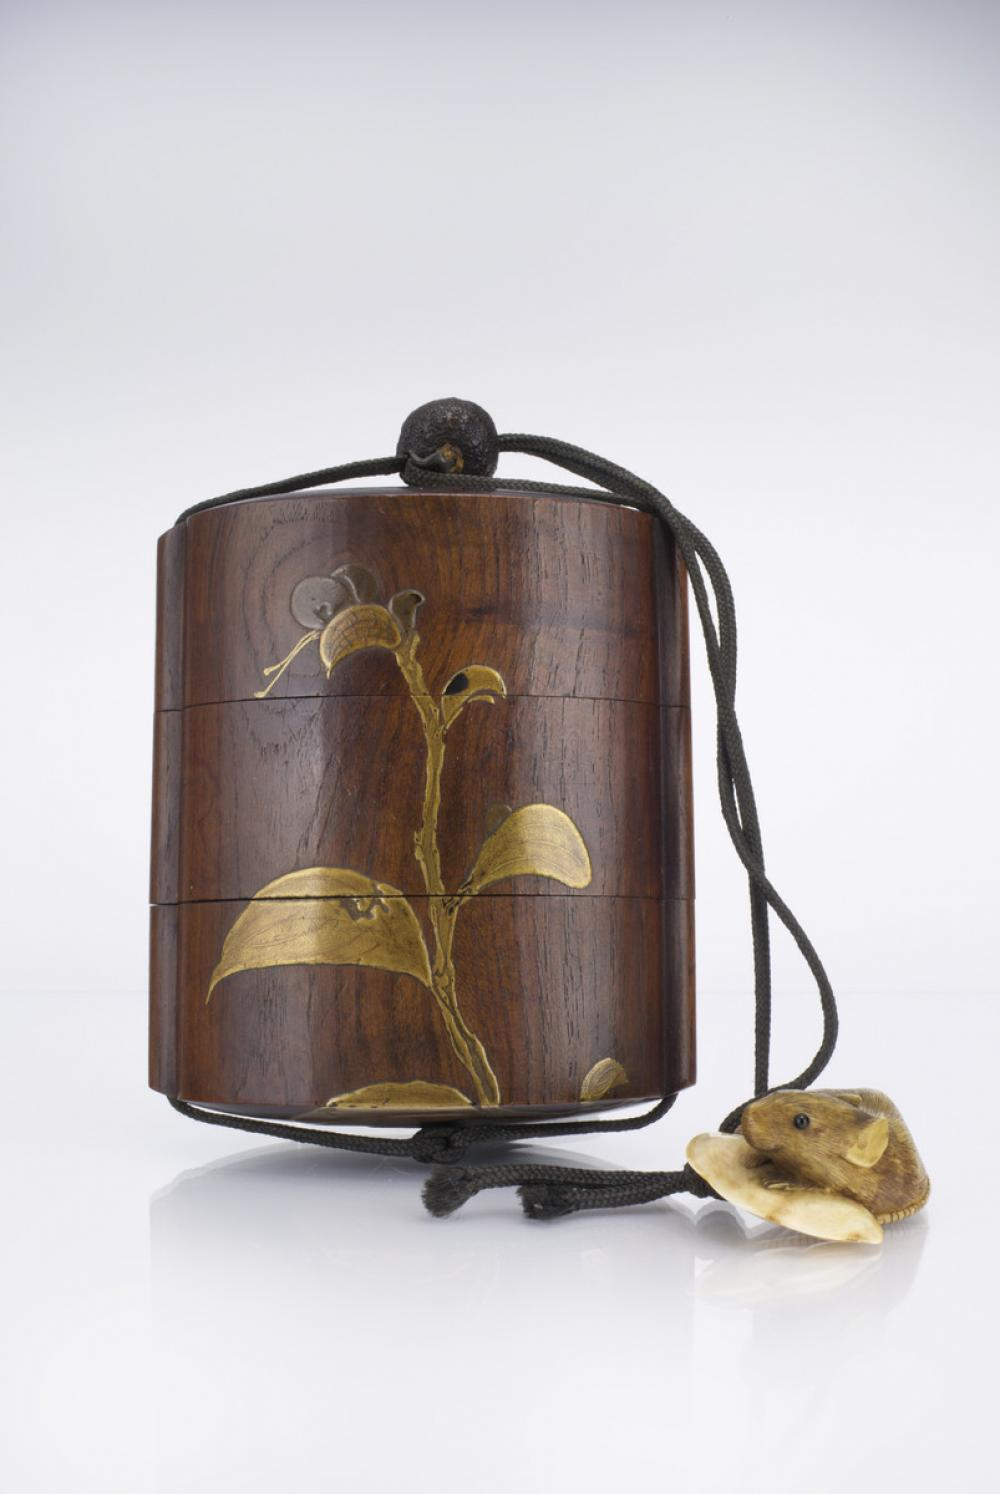 Maker Unknown (Japanese), Inro (three-part container) with lacquer work, 19th century